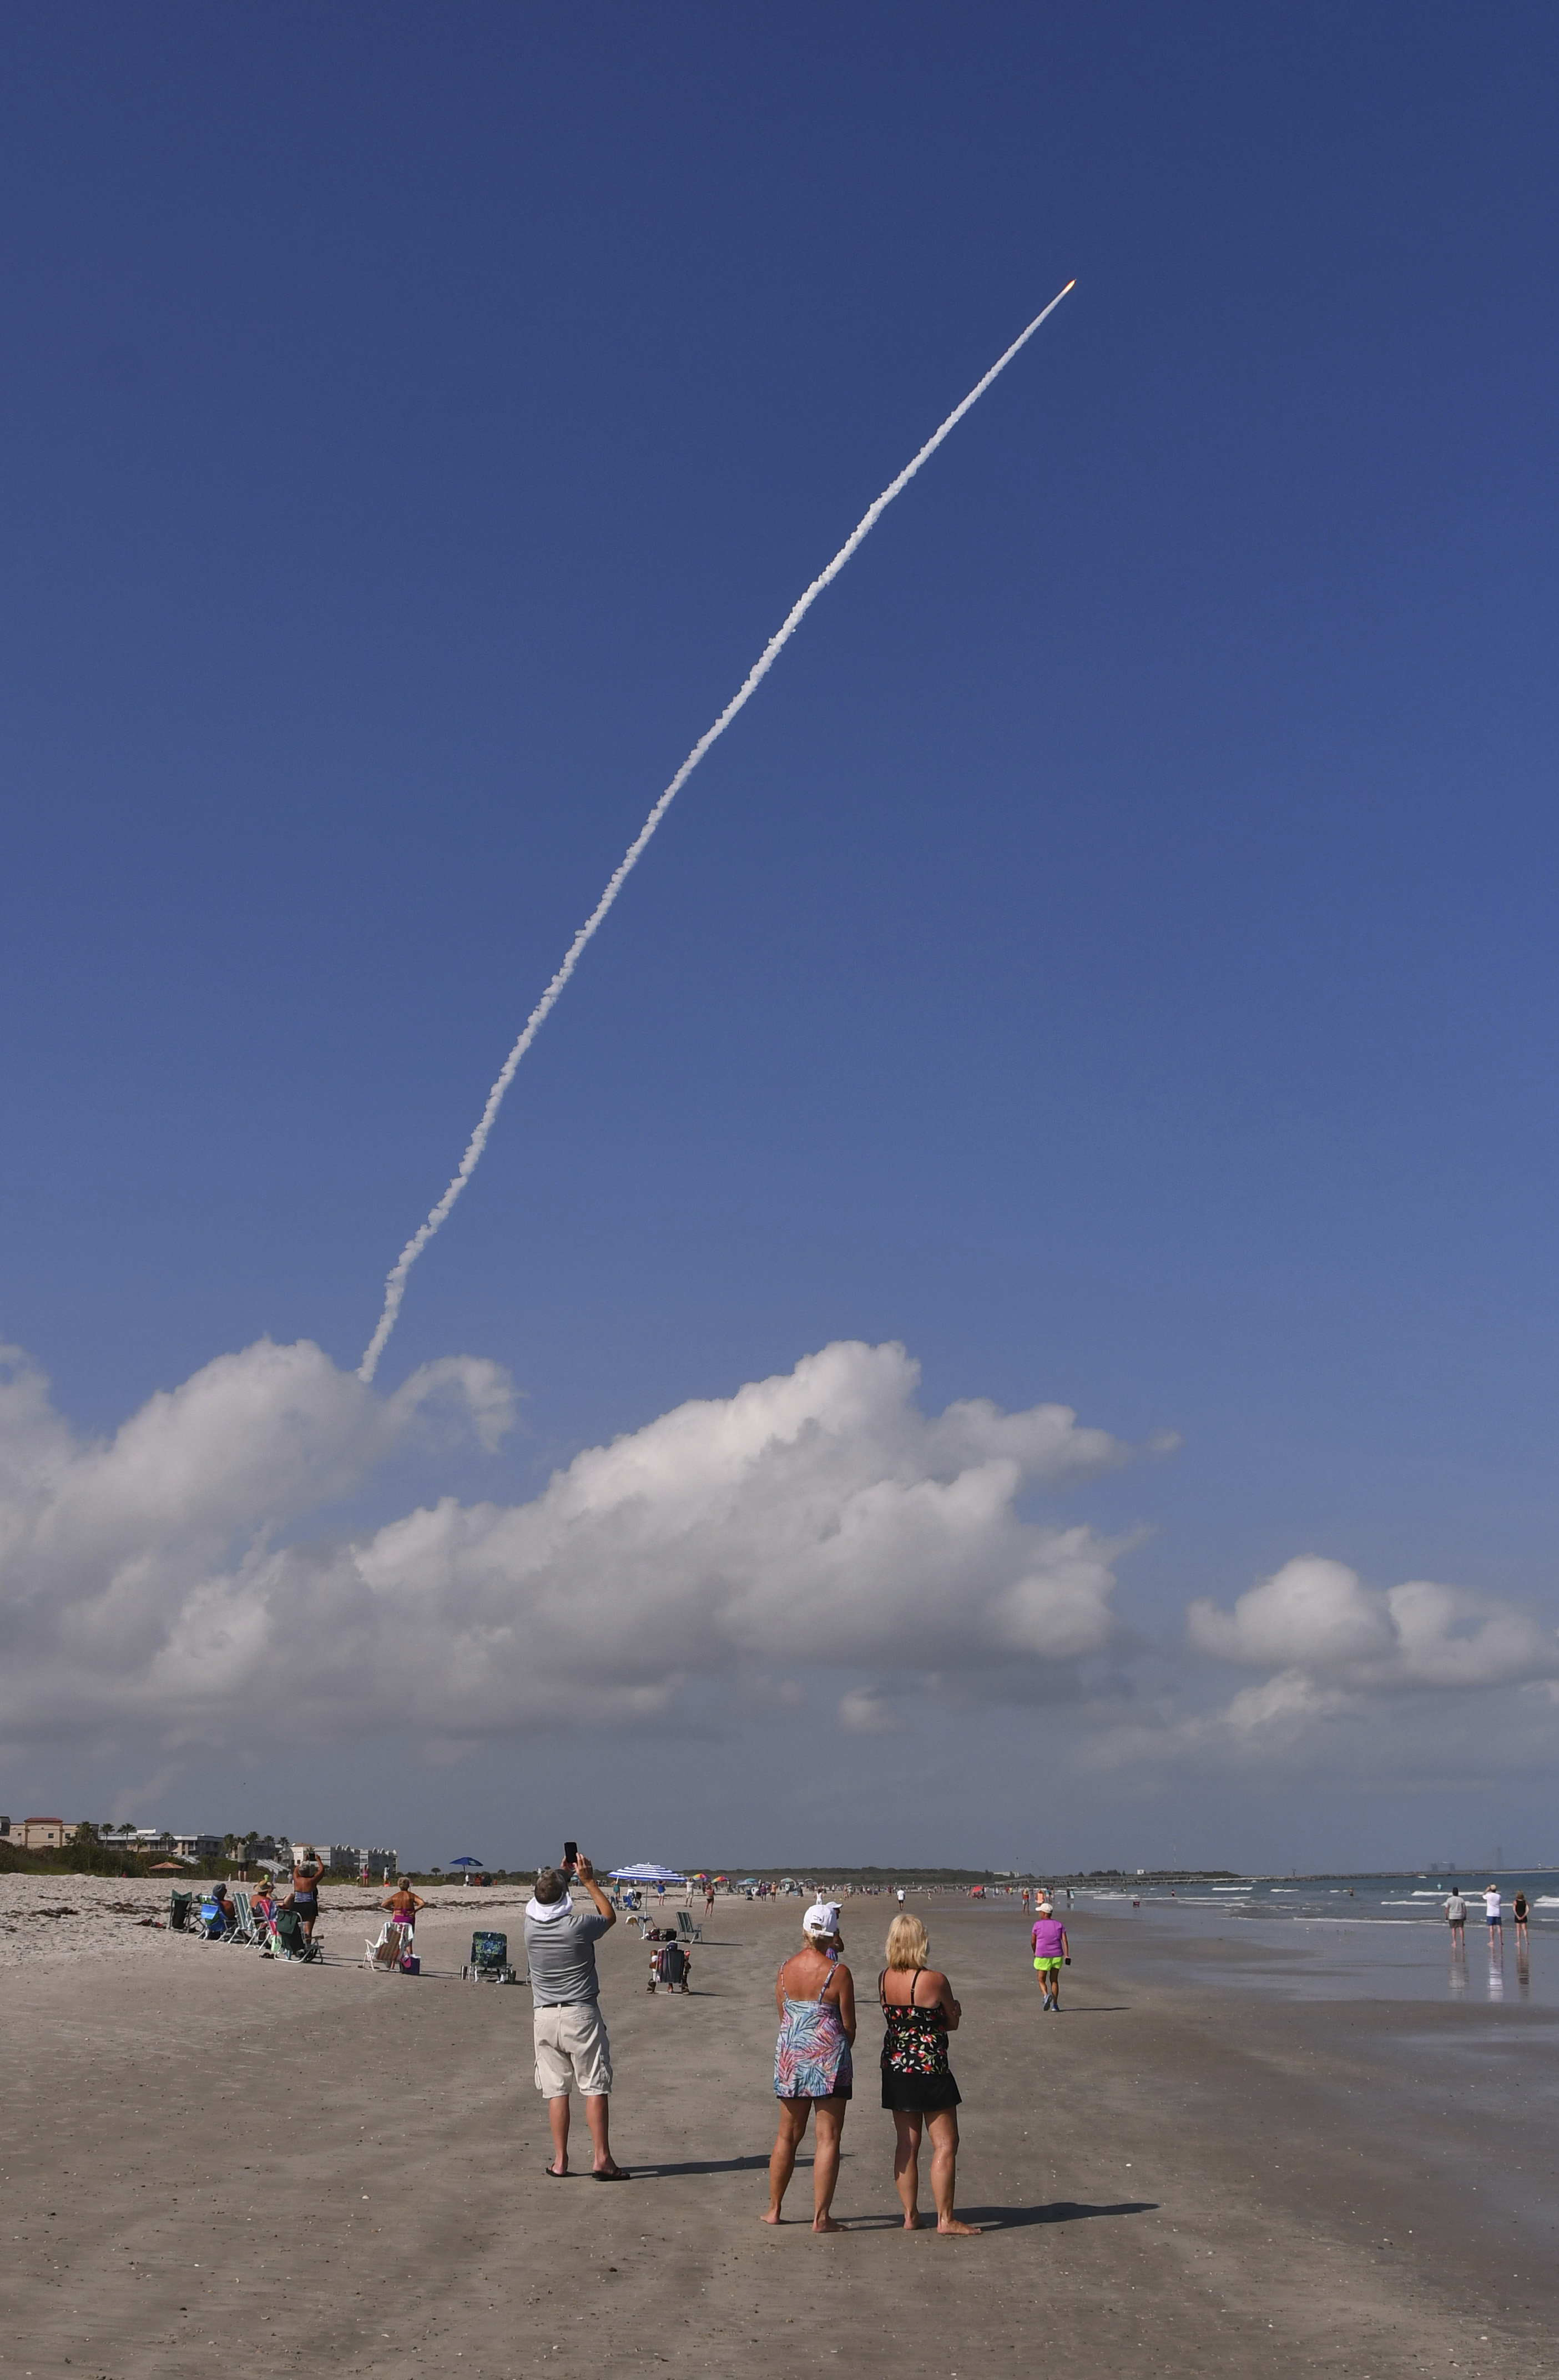 Sparse crowds on the beach watch the launch of an Atlas V rocket carrying a satellite, the sixth and final one in the U.S. military's Advanced Extremely High Frequency series, Thursday, March 26, 2020, from Cape Canaveral, Fla.